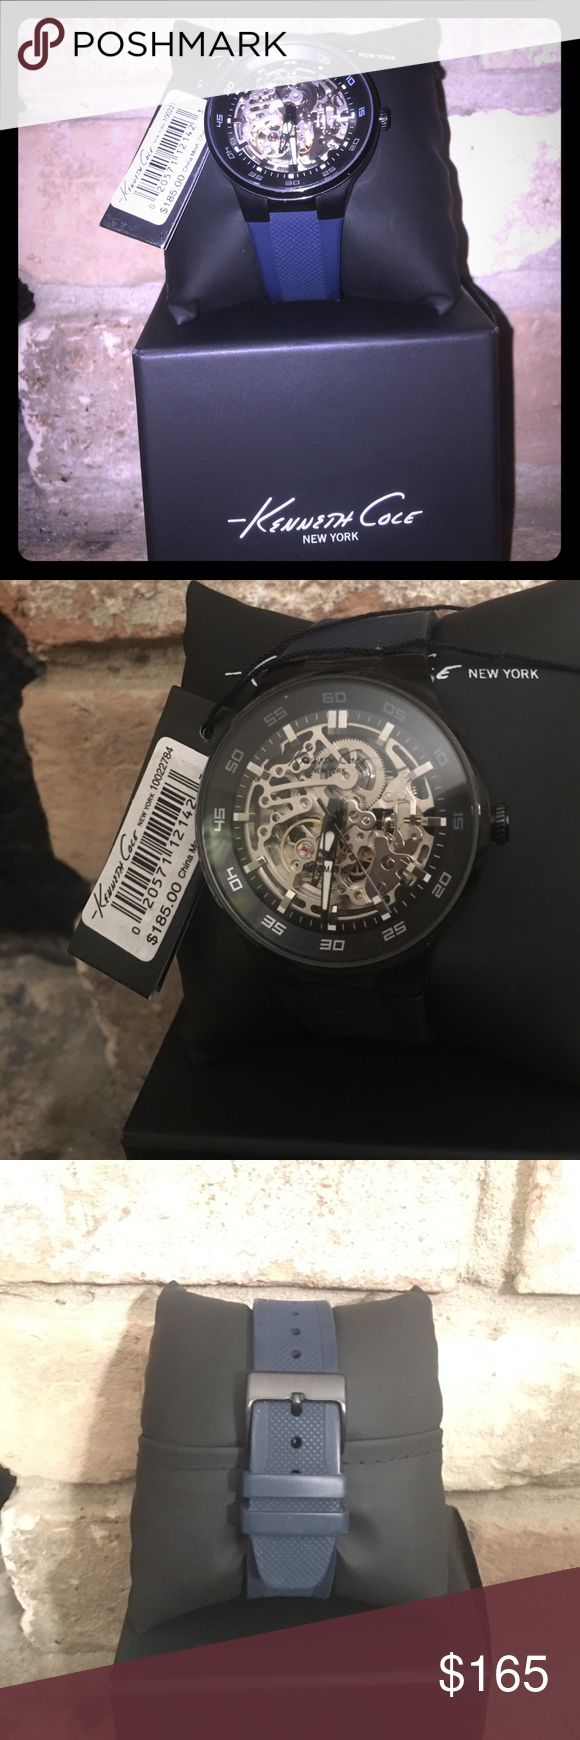 Kenneth Cole skeleton watch!! Brand new never been worn Kenneth Cole Skeleton watch. Black see thru face with navy rubber adjustable wrist band. Comes with original tag, pillow, box, and manuel. Kenneth Cole Accessories Watches